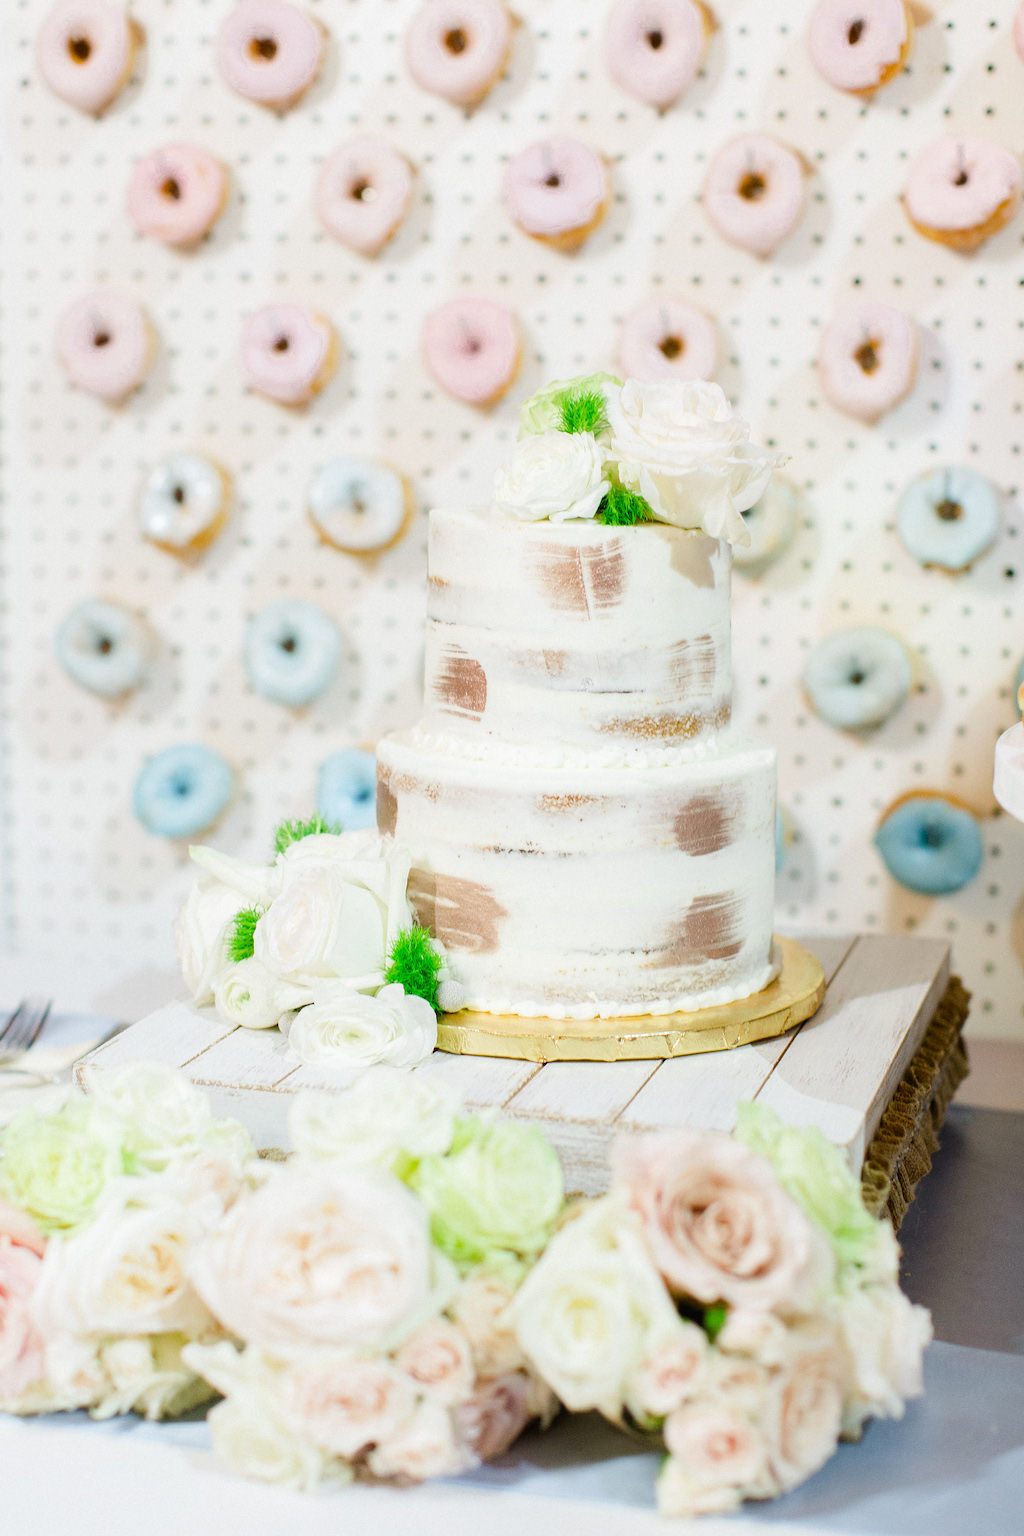 Two Tier Semi Naked Wedding Cake with Ivory Rose Cake Toppers, Donut Wall Backdrop